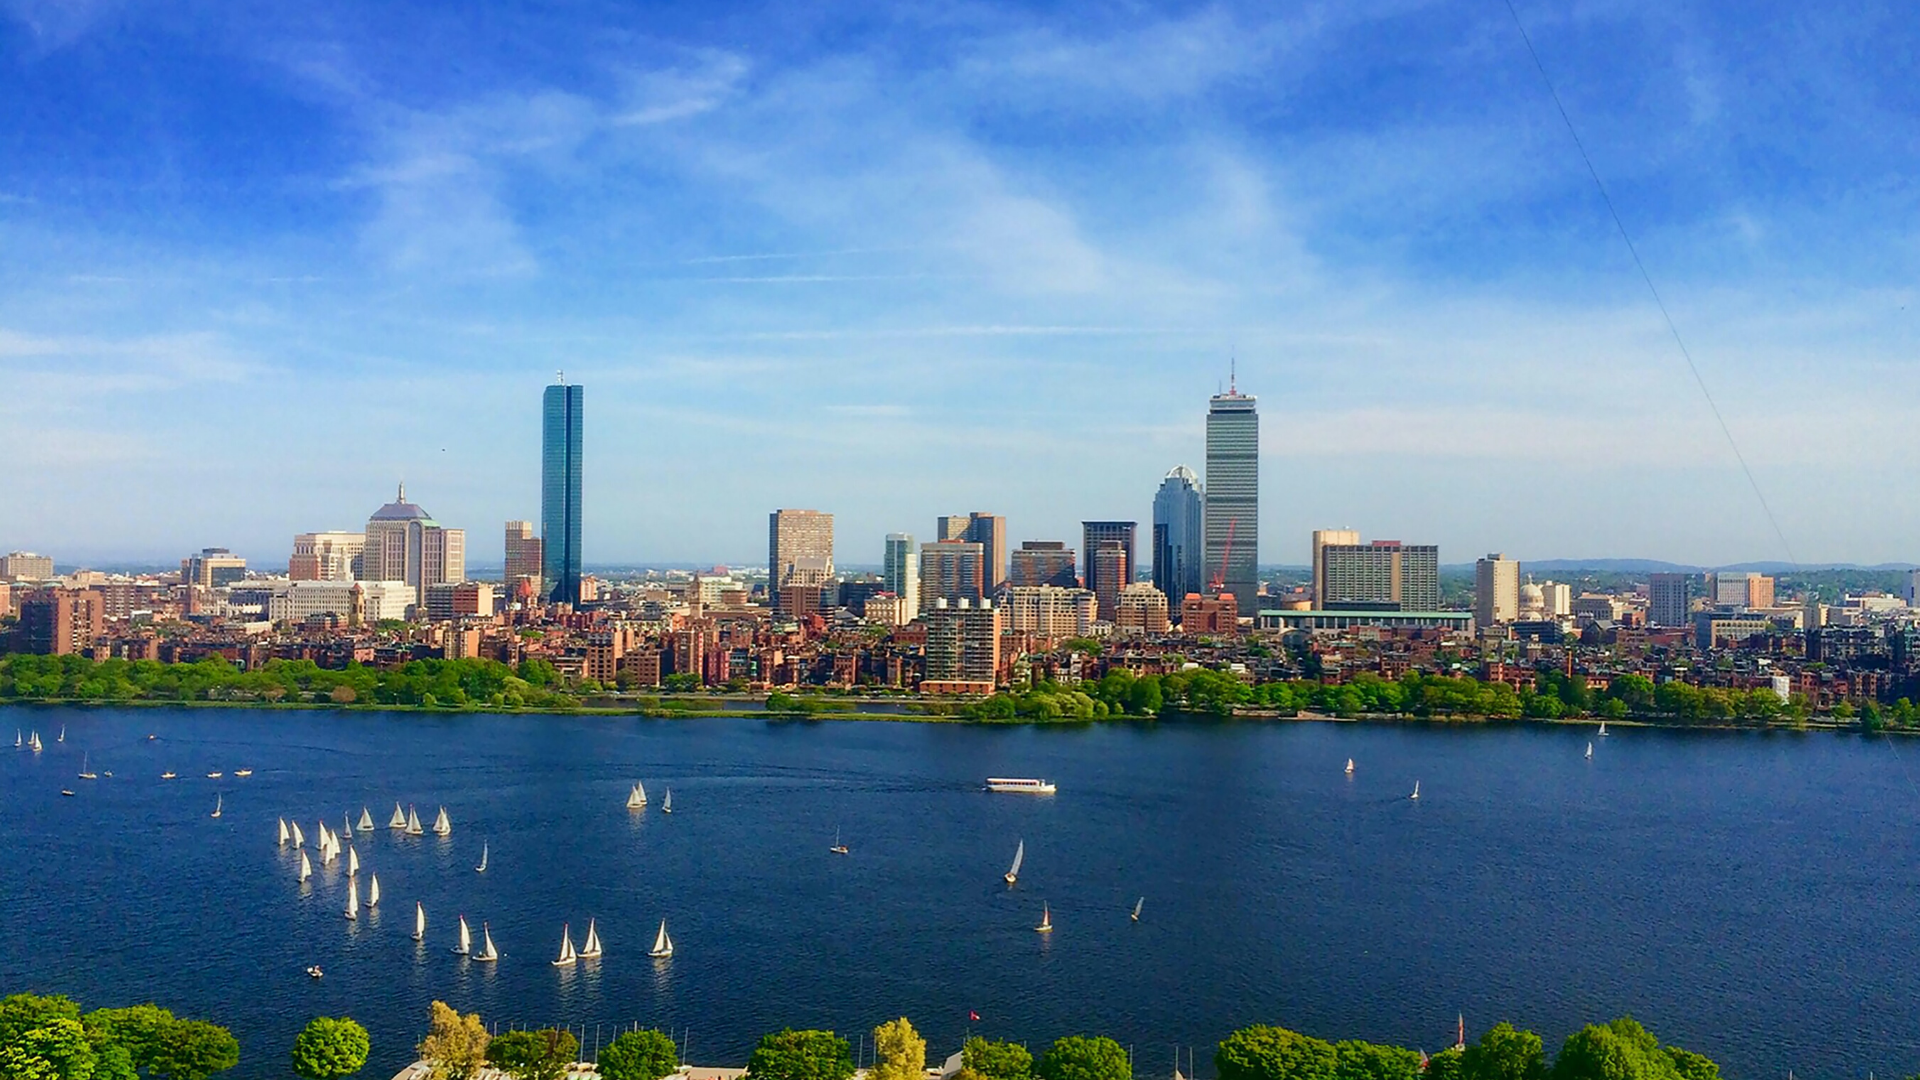 A Virtual Walk Through Some of Boston's Most Iconic Neighborhoods